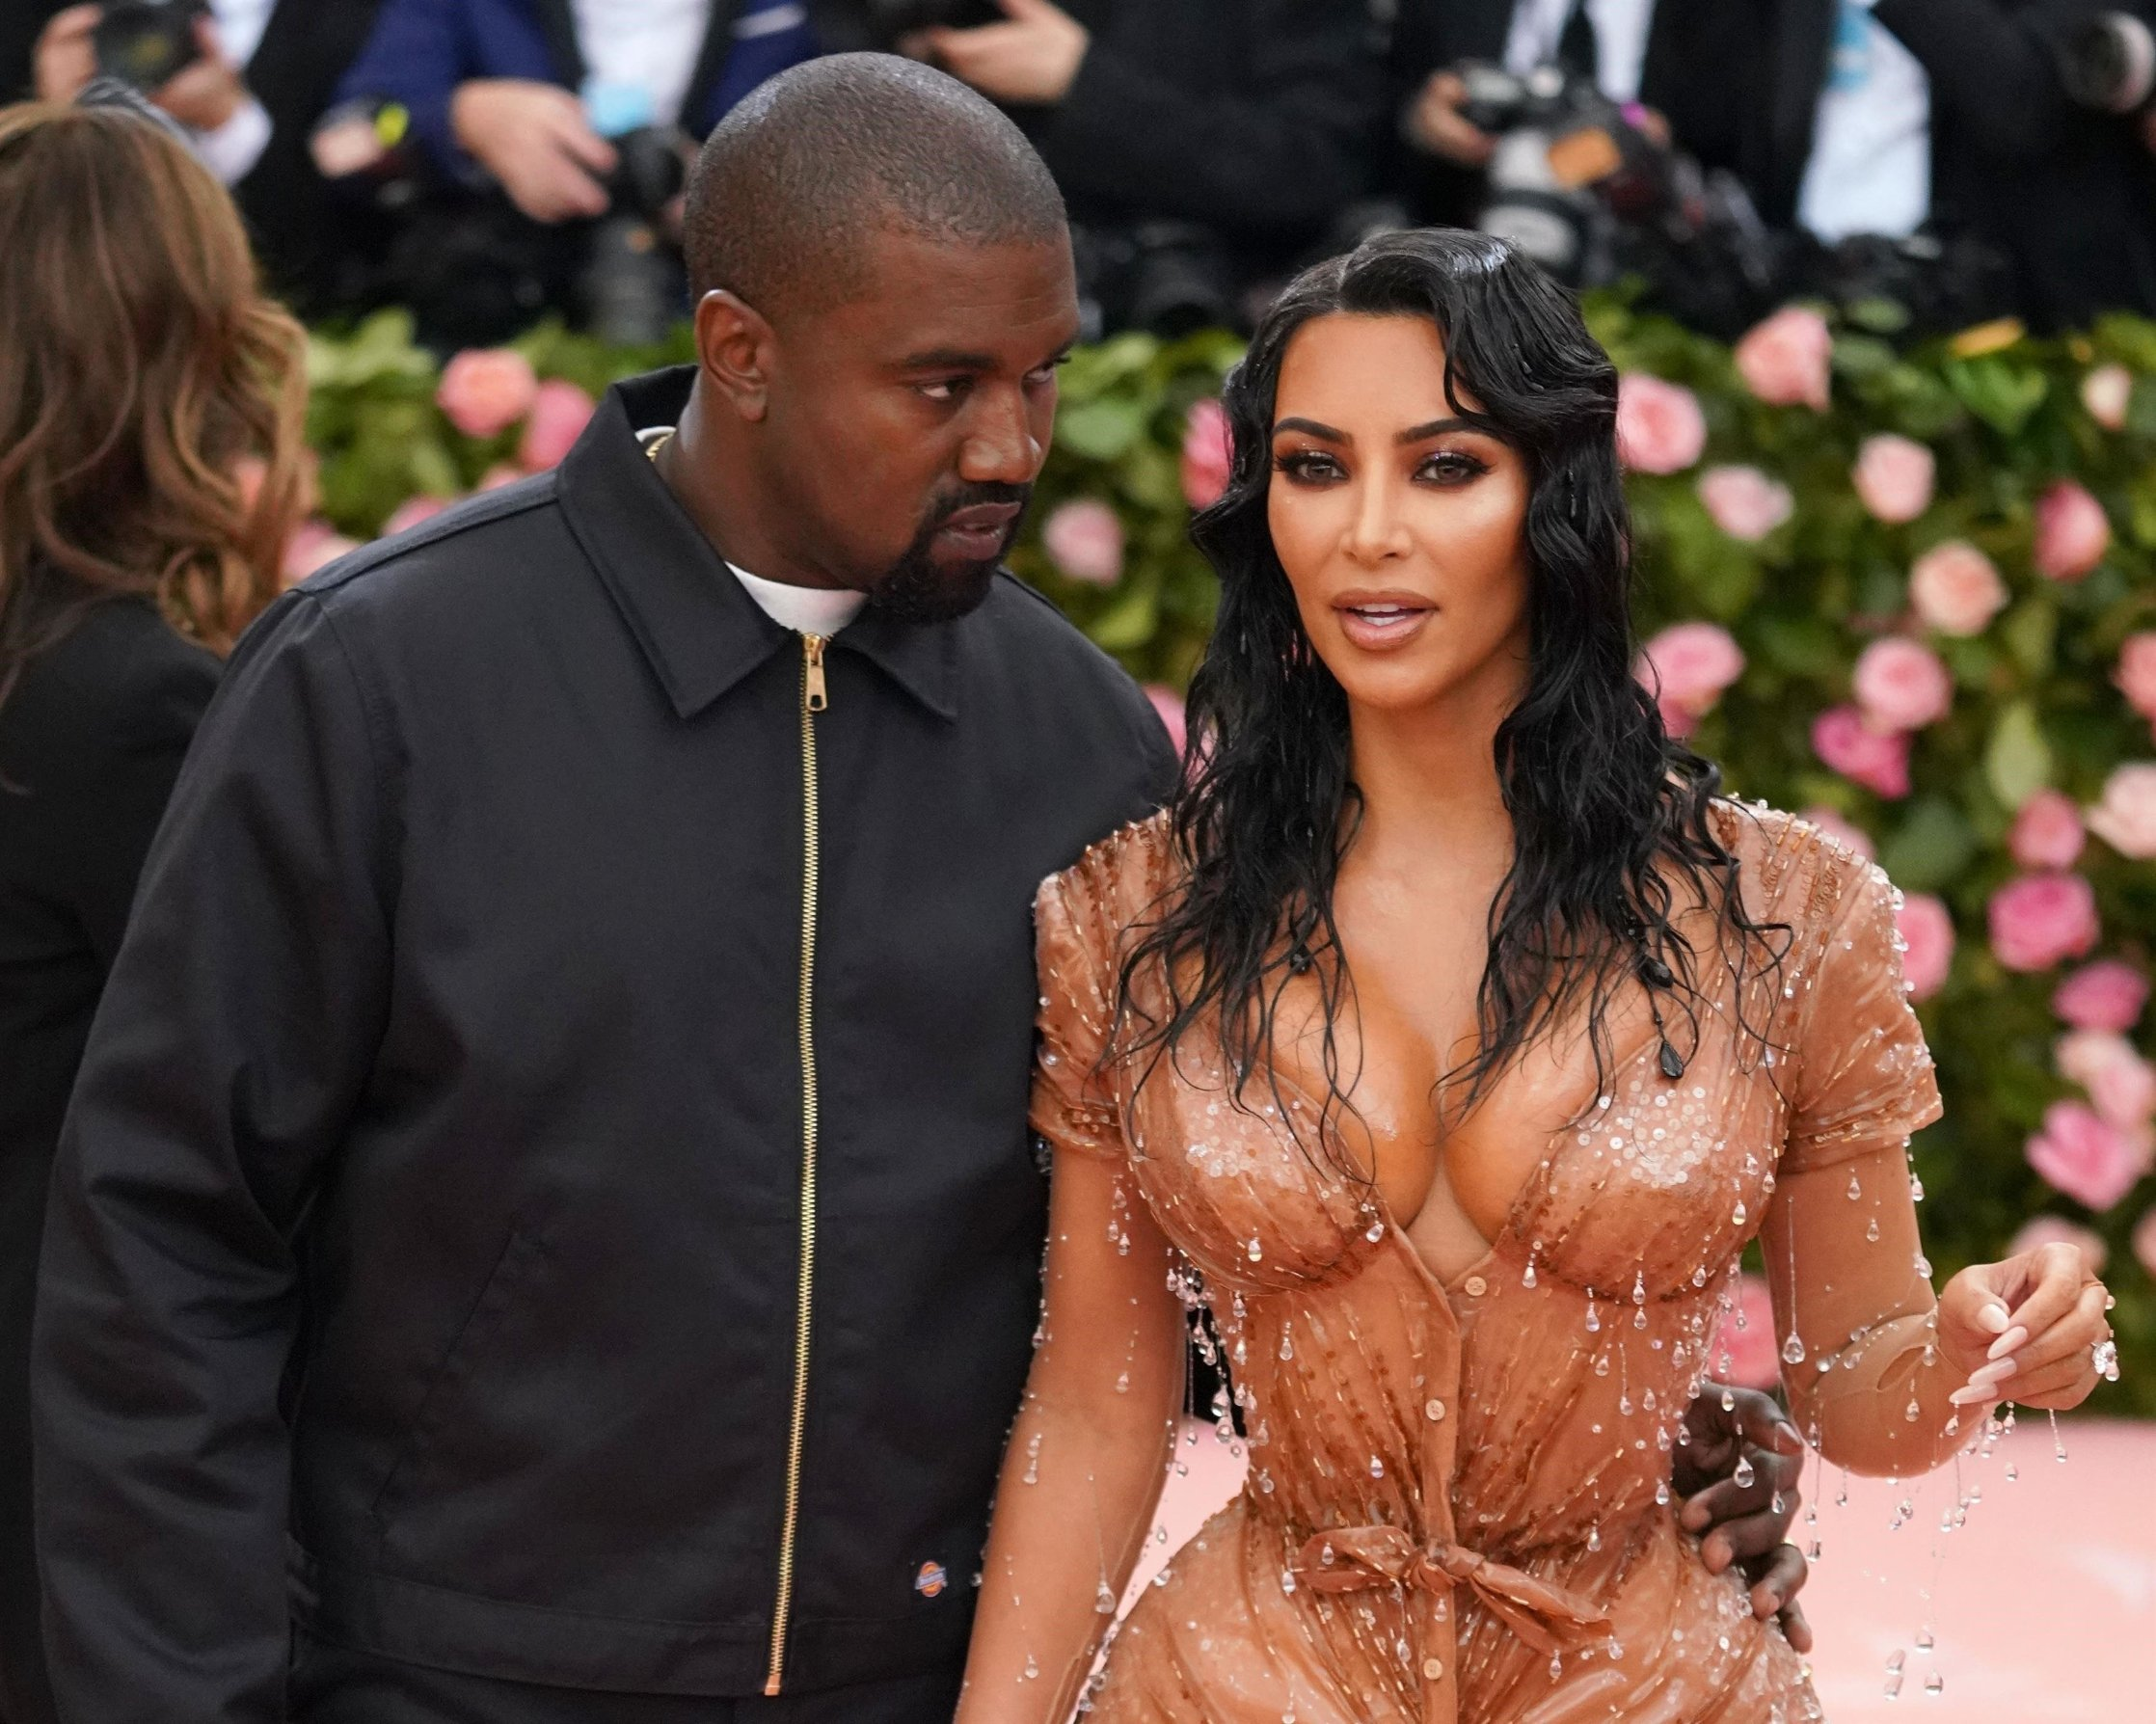 New York, NY  - Kim Kardashian West and Kanye West arrive at the 2019 Met Gala in New York.  Pictured: Kim Kardashian West, Kanye West    *UK Clients - Pictures Containing Children Please Pixelate Face Prior To Publication*, Image: 431589829, License: Rights-managed, Restrictions: , Model Release: no, Credit line: Profimedia, Backgrid USA